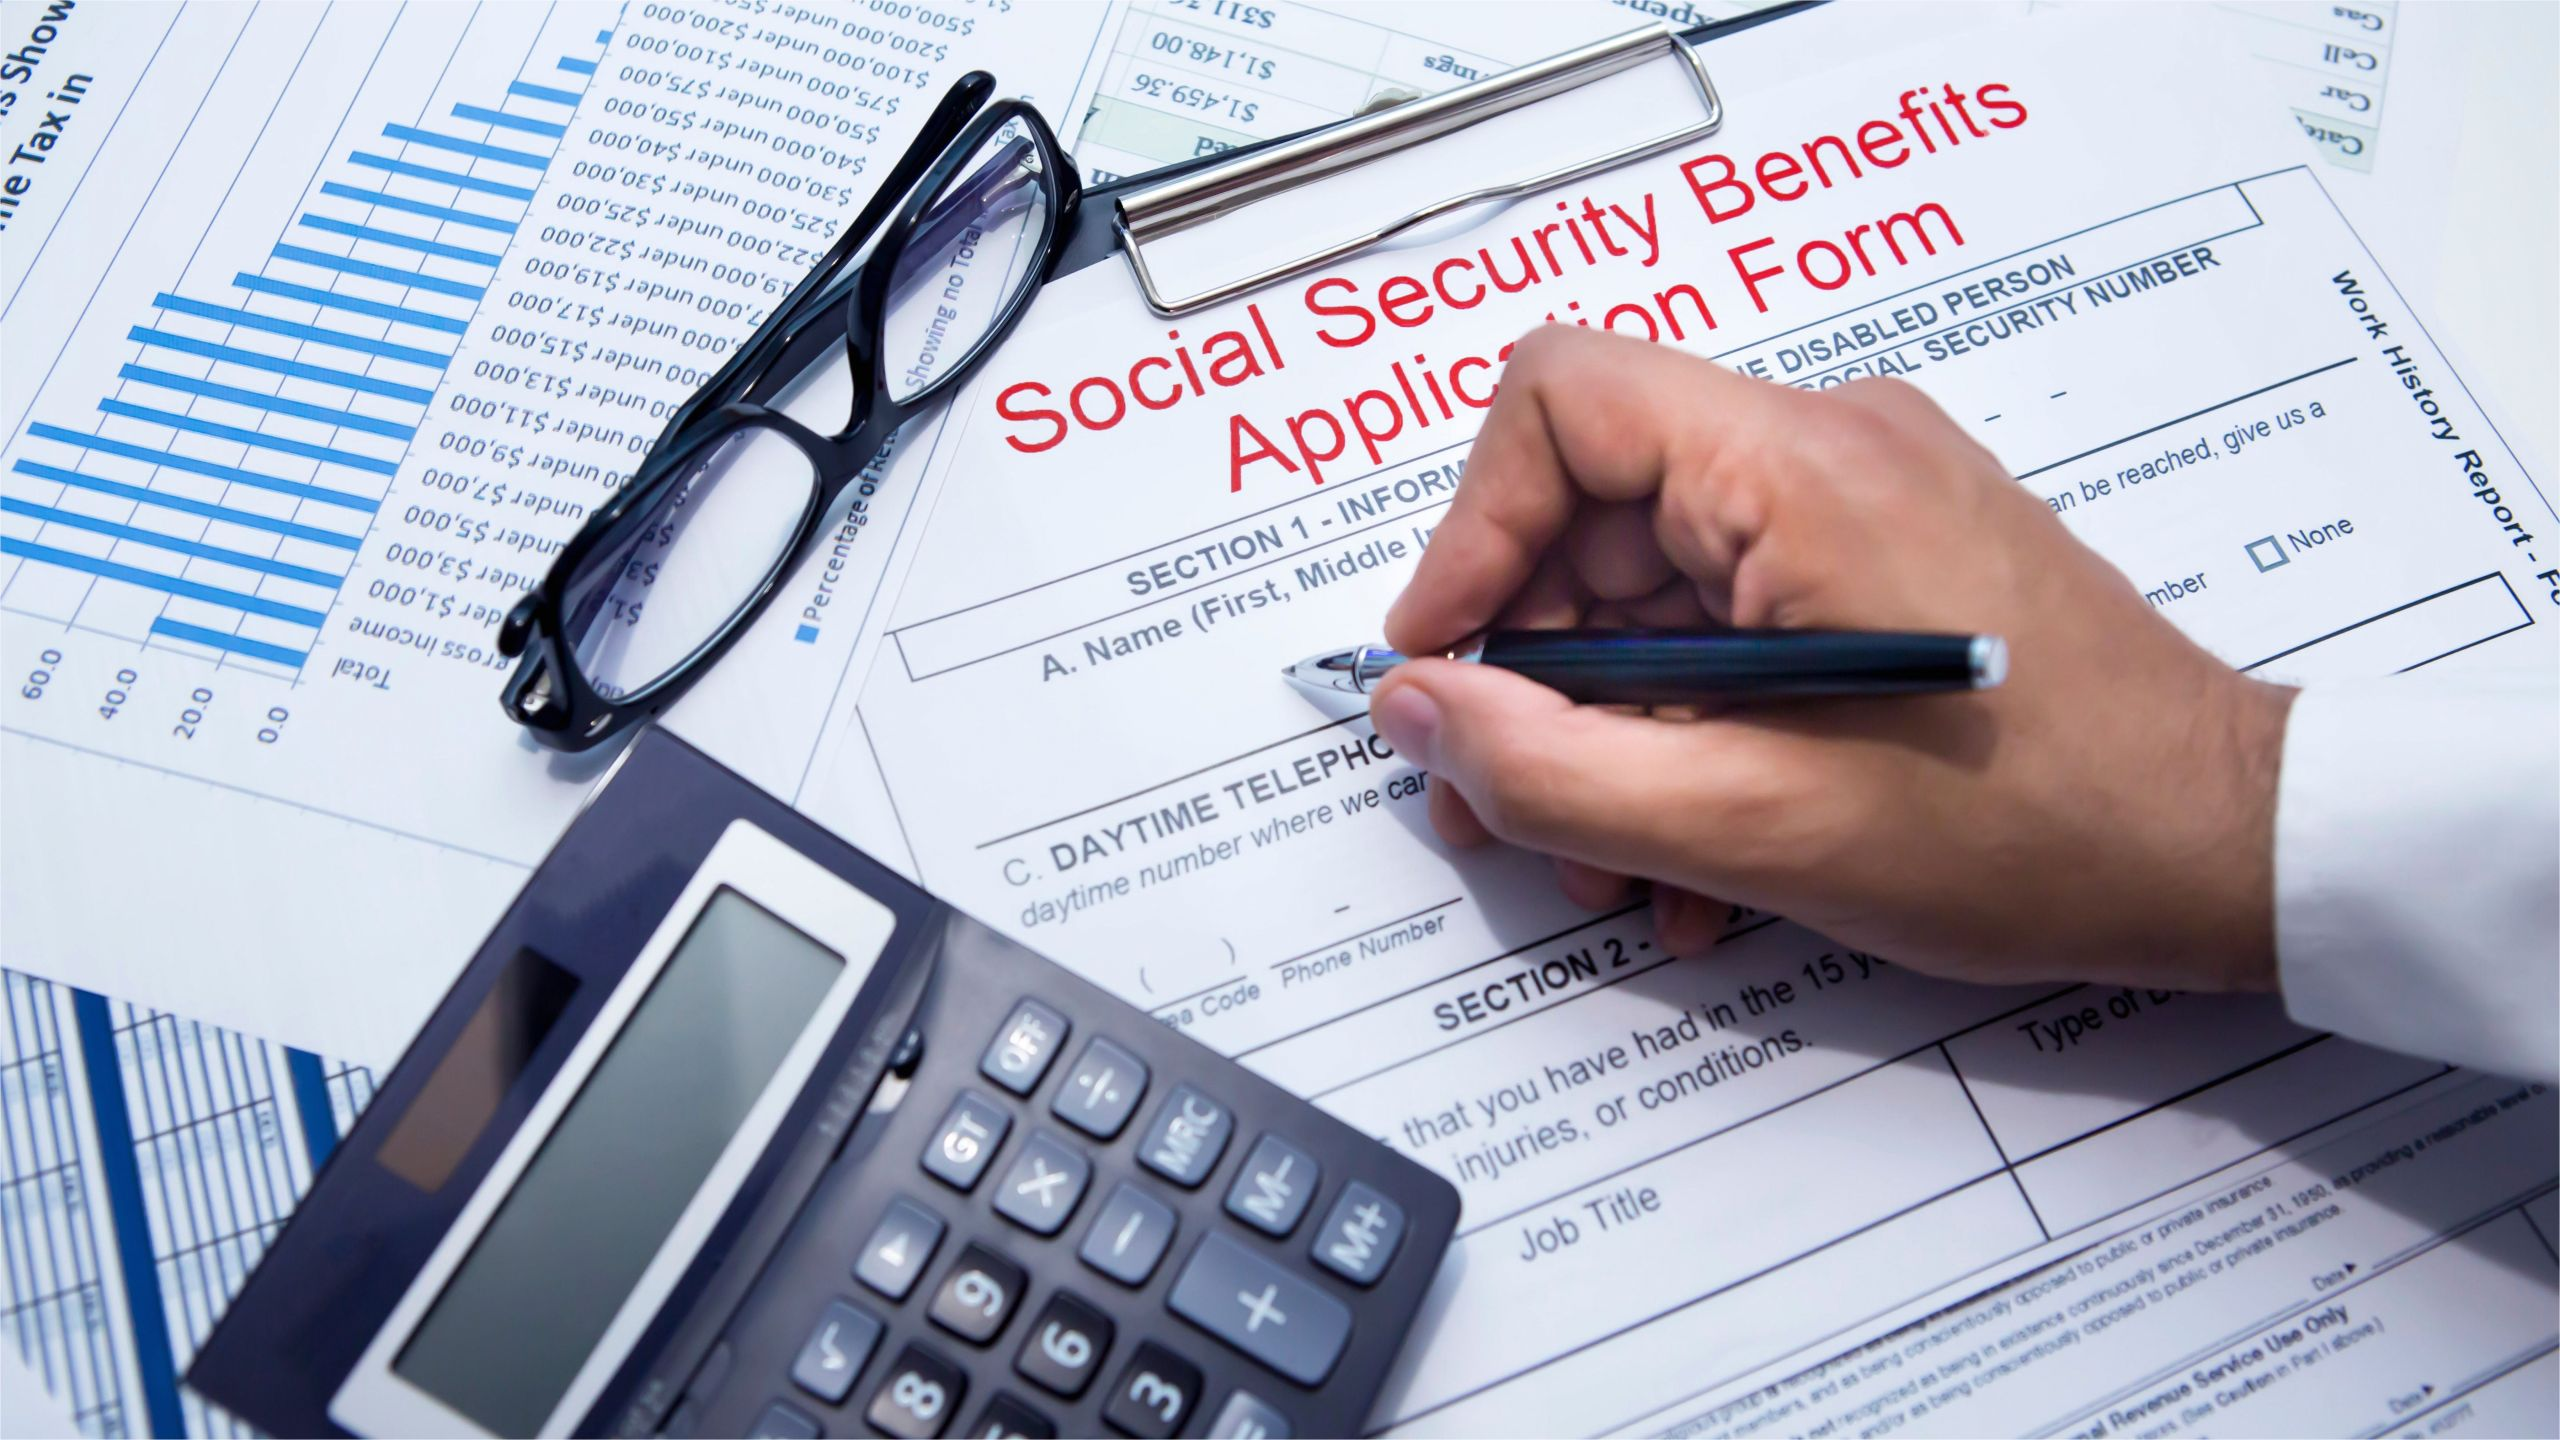 social security benefit application getty jpg